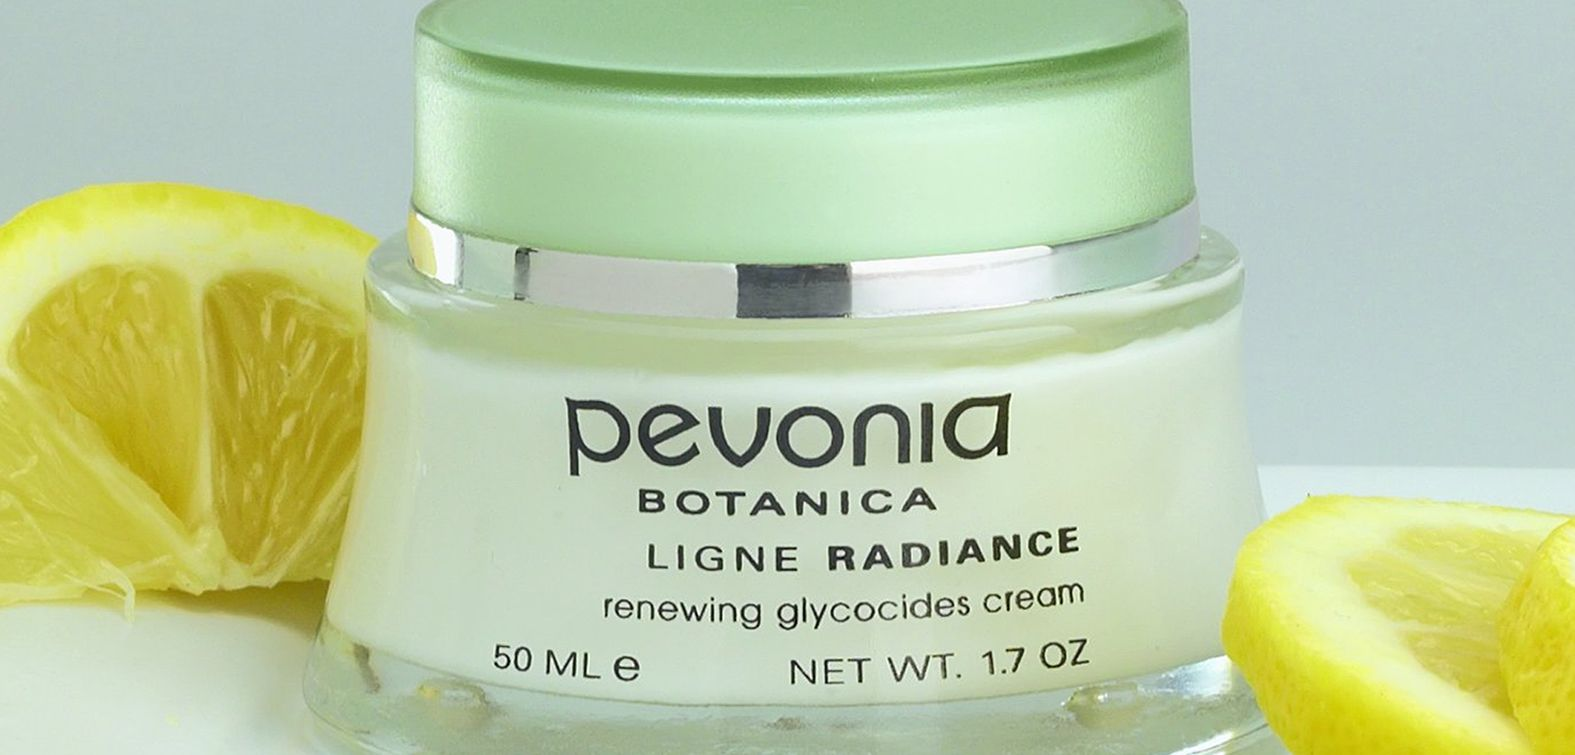 Pevonia Products at Monart